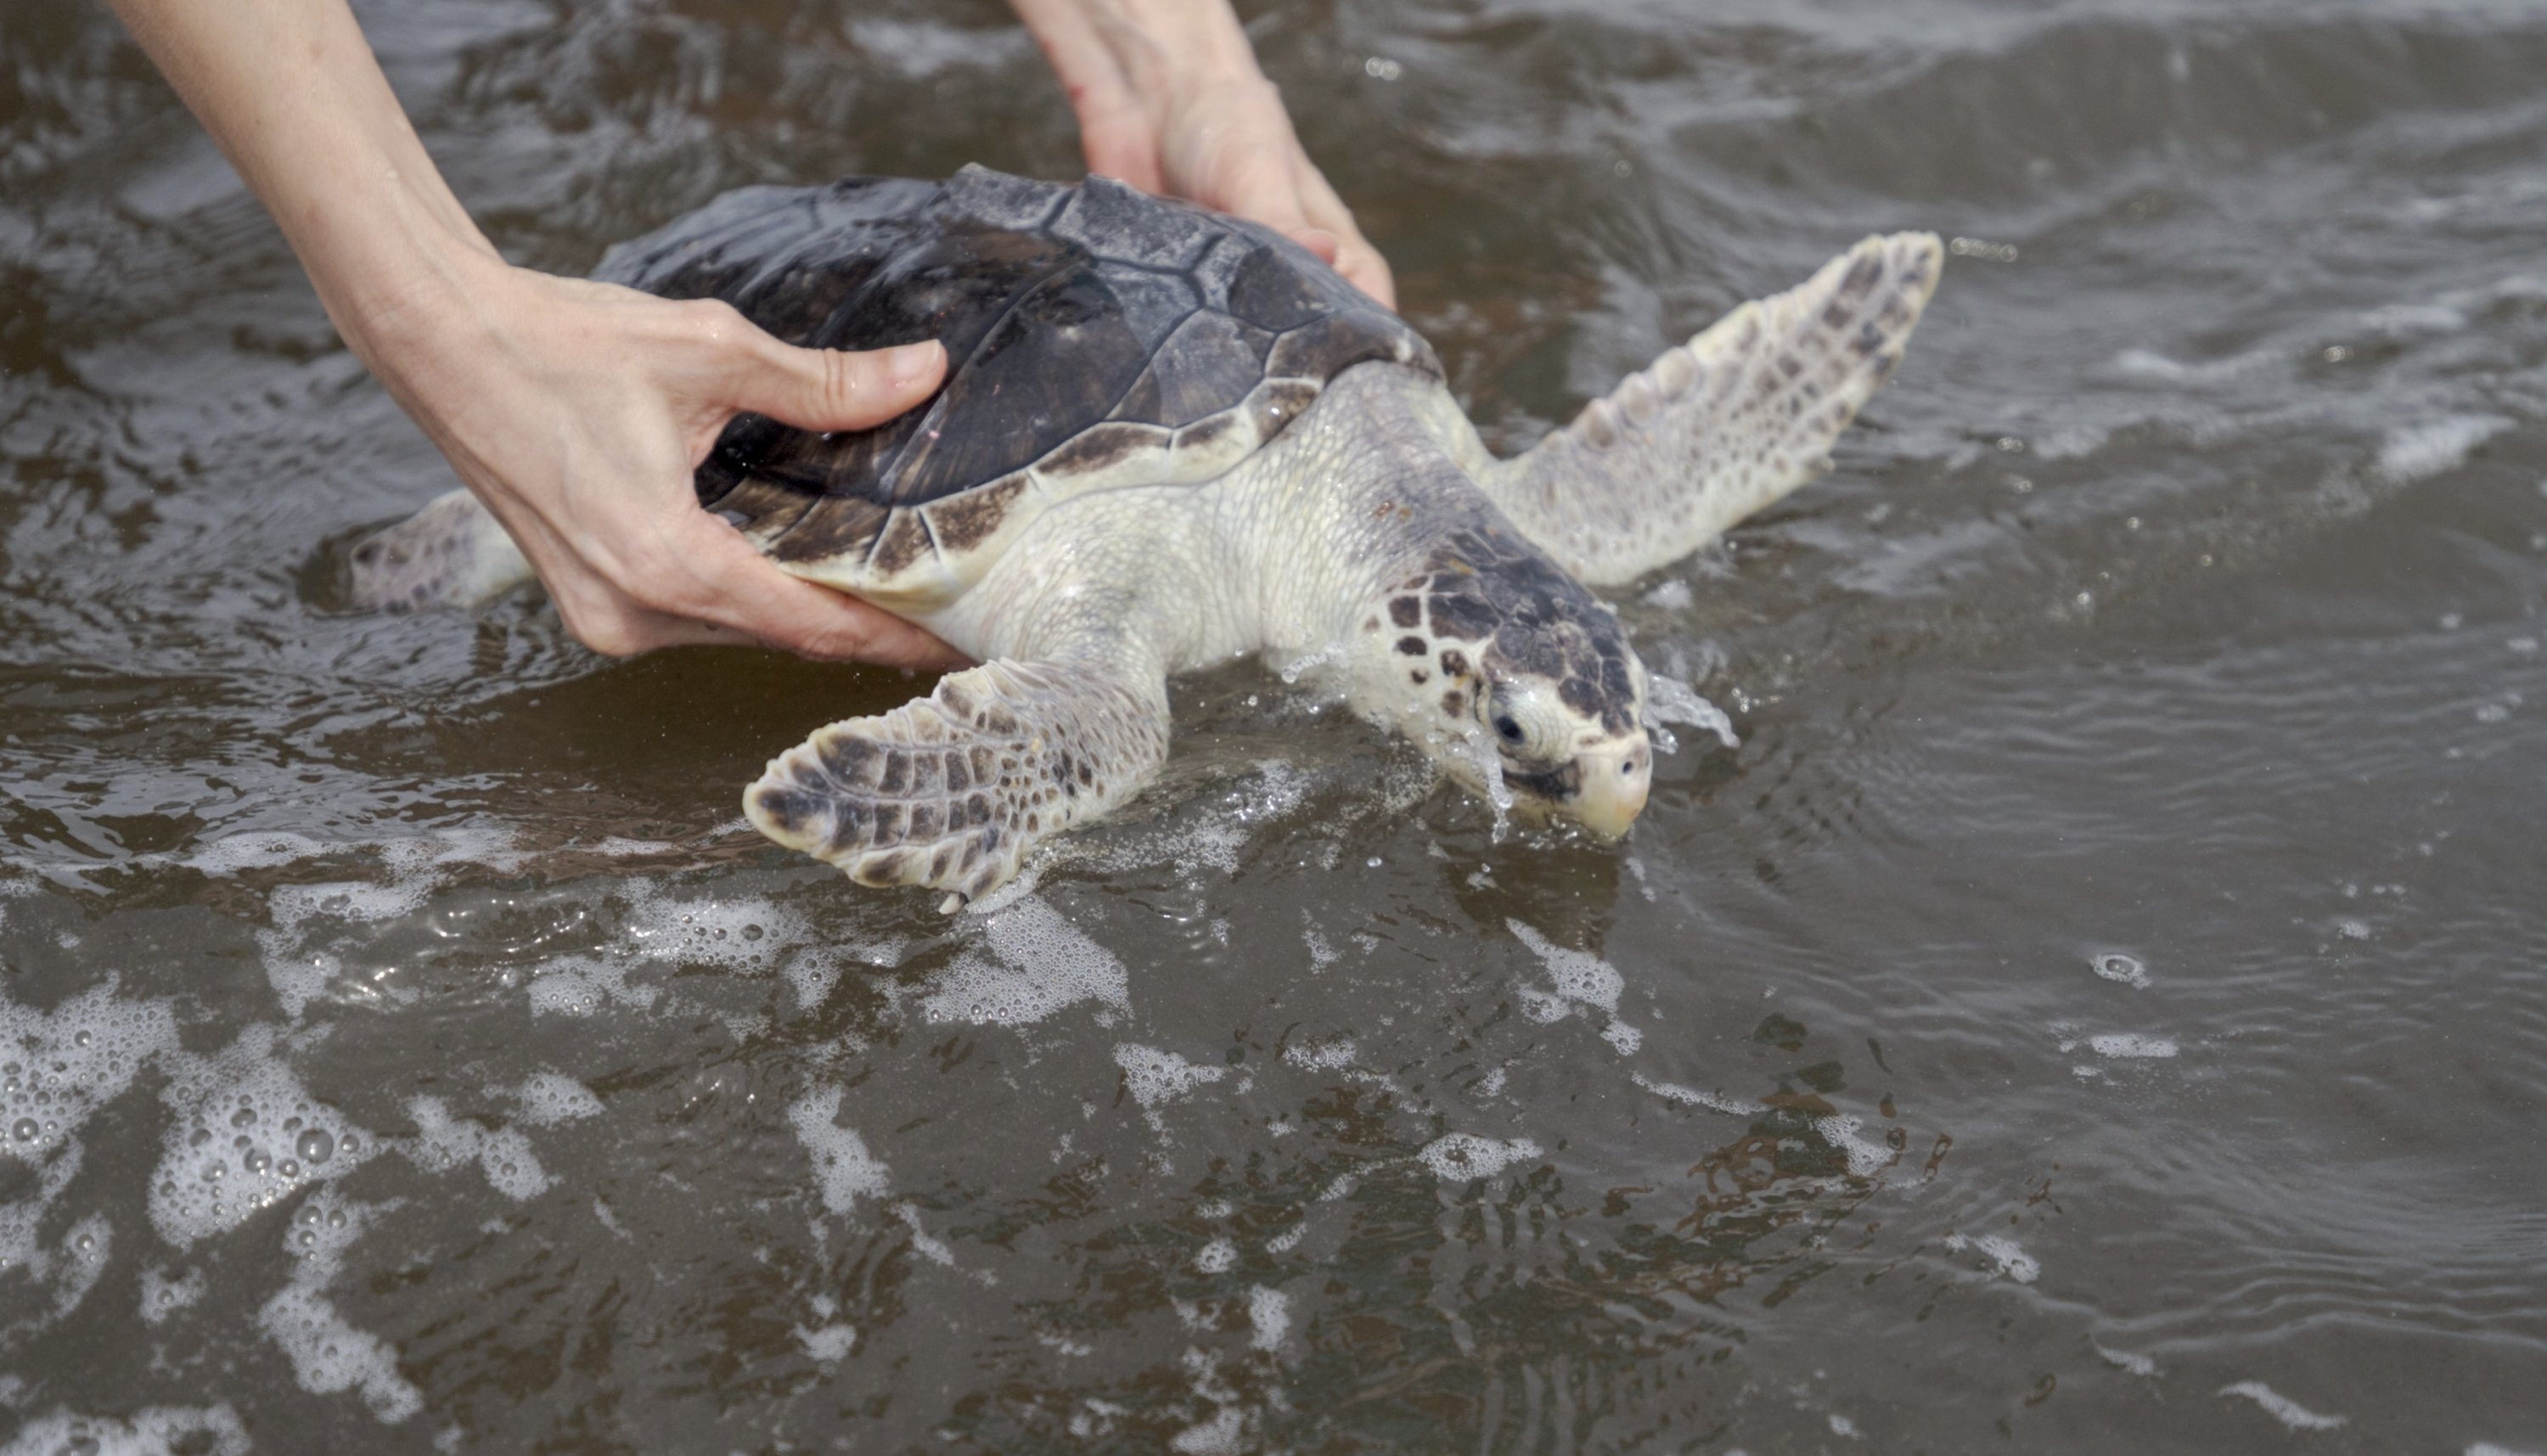 A Kemp's Ridley sea turtle is released into the Gulf of Mexico from the Grand Isle, Louisiana beach, the U.S., March 15, 2021. (The Advocate via AP)